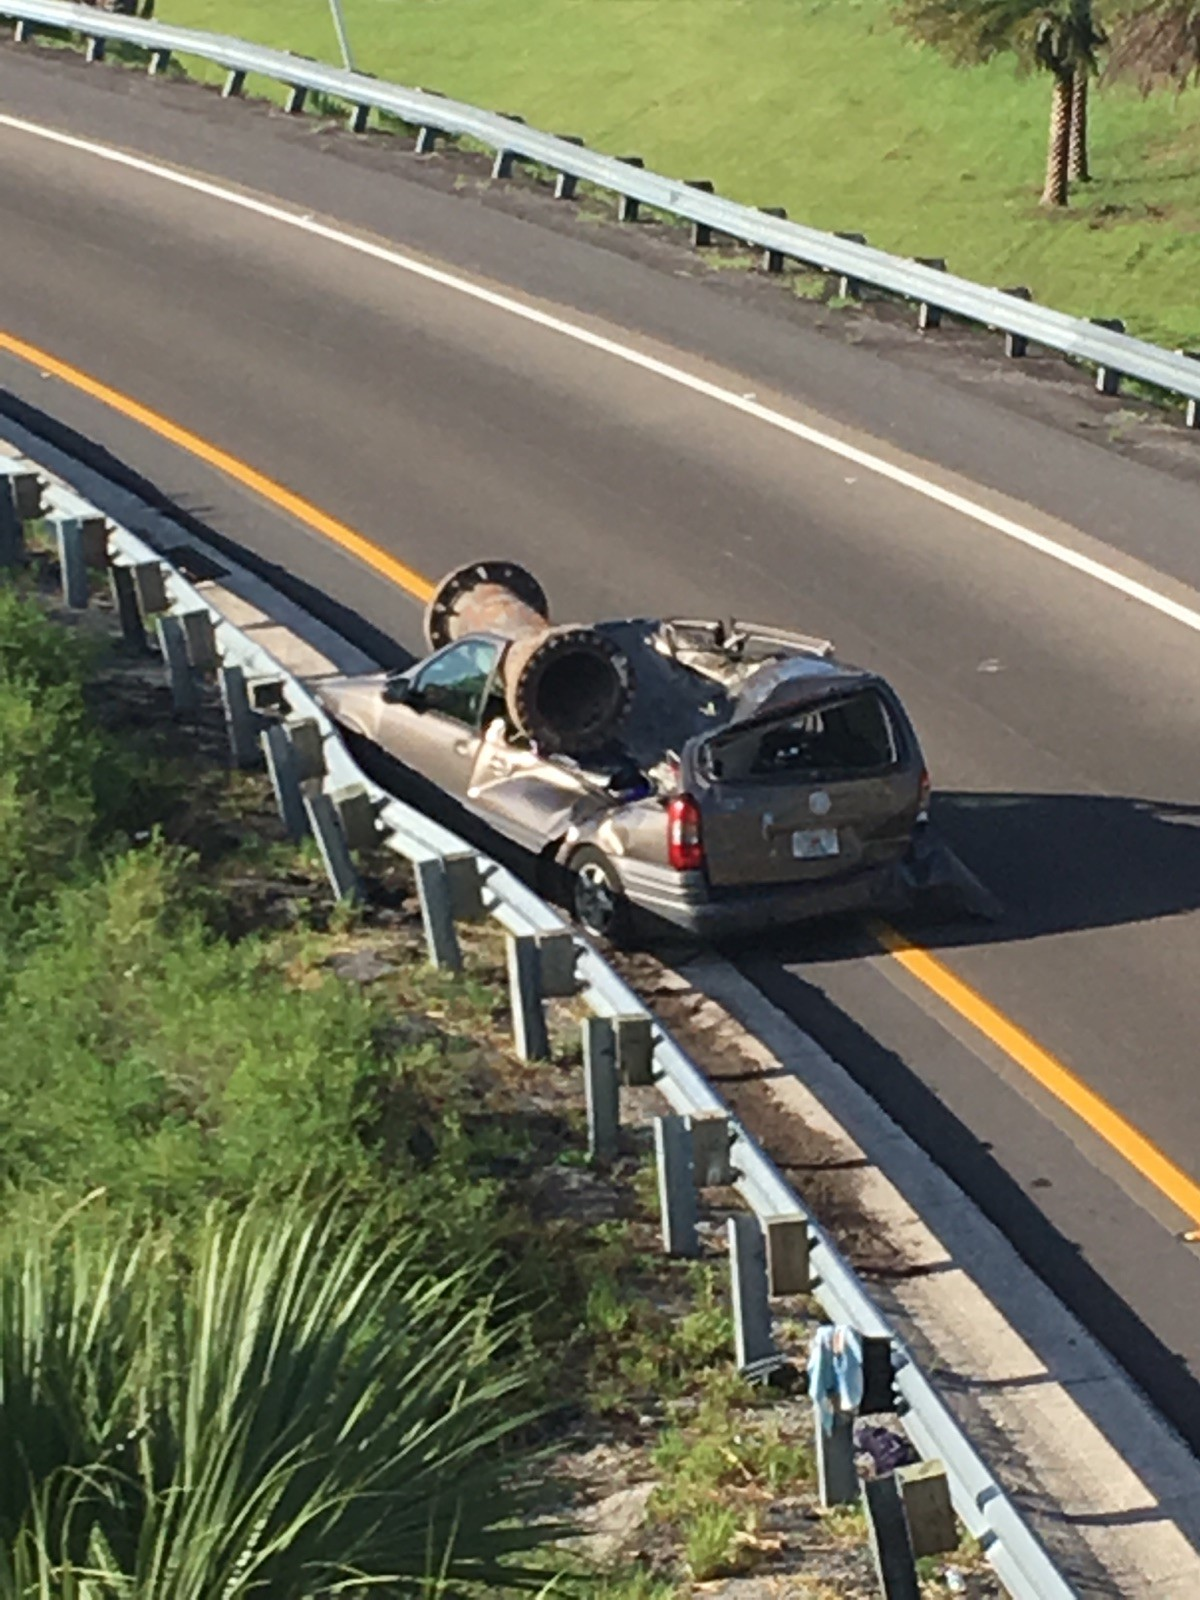 Large Metal Object Falls Off I 4 Overpass Crushing Car Below